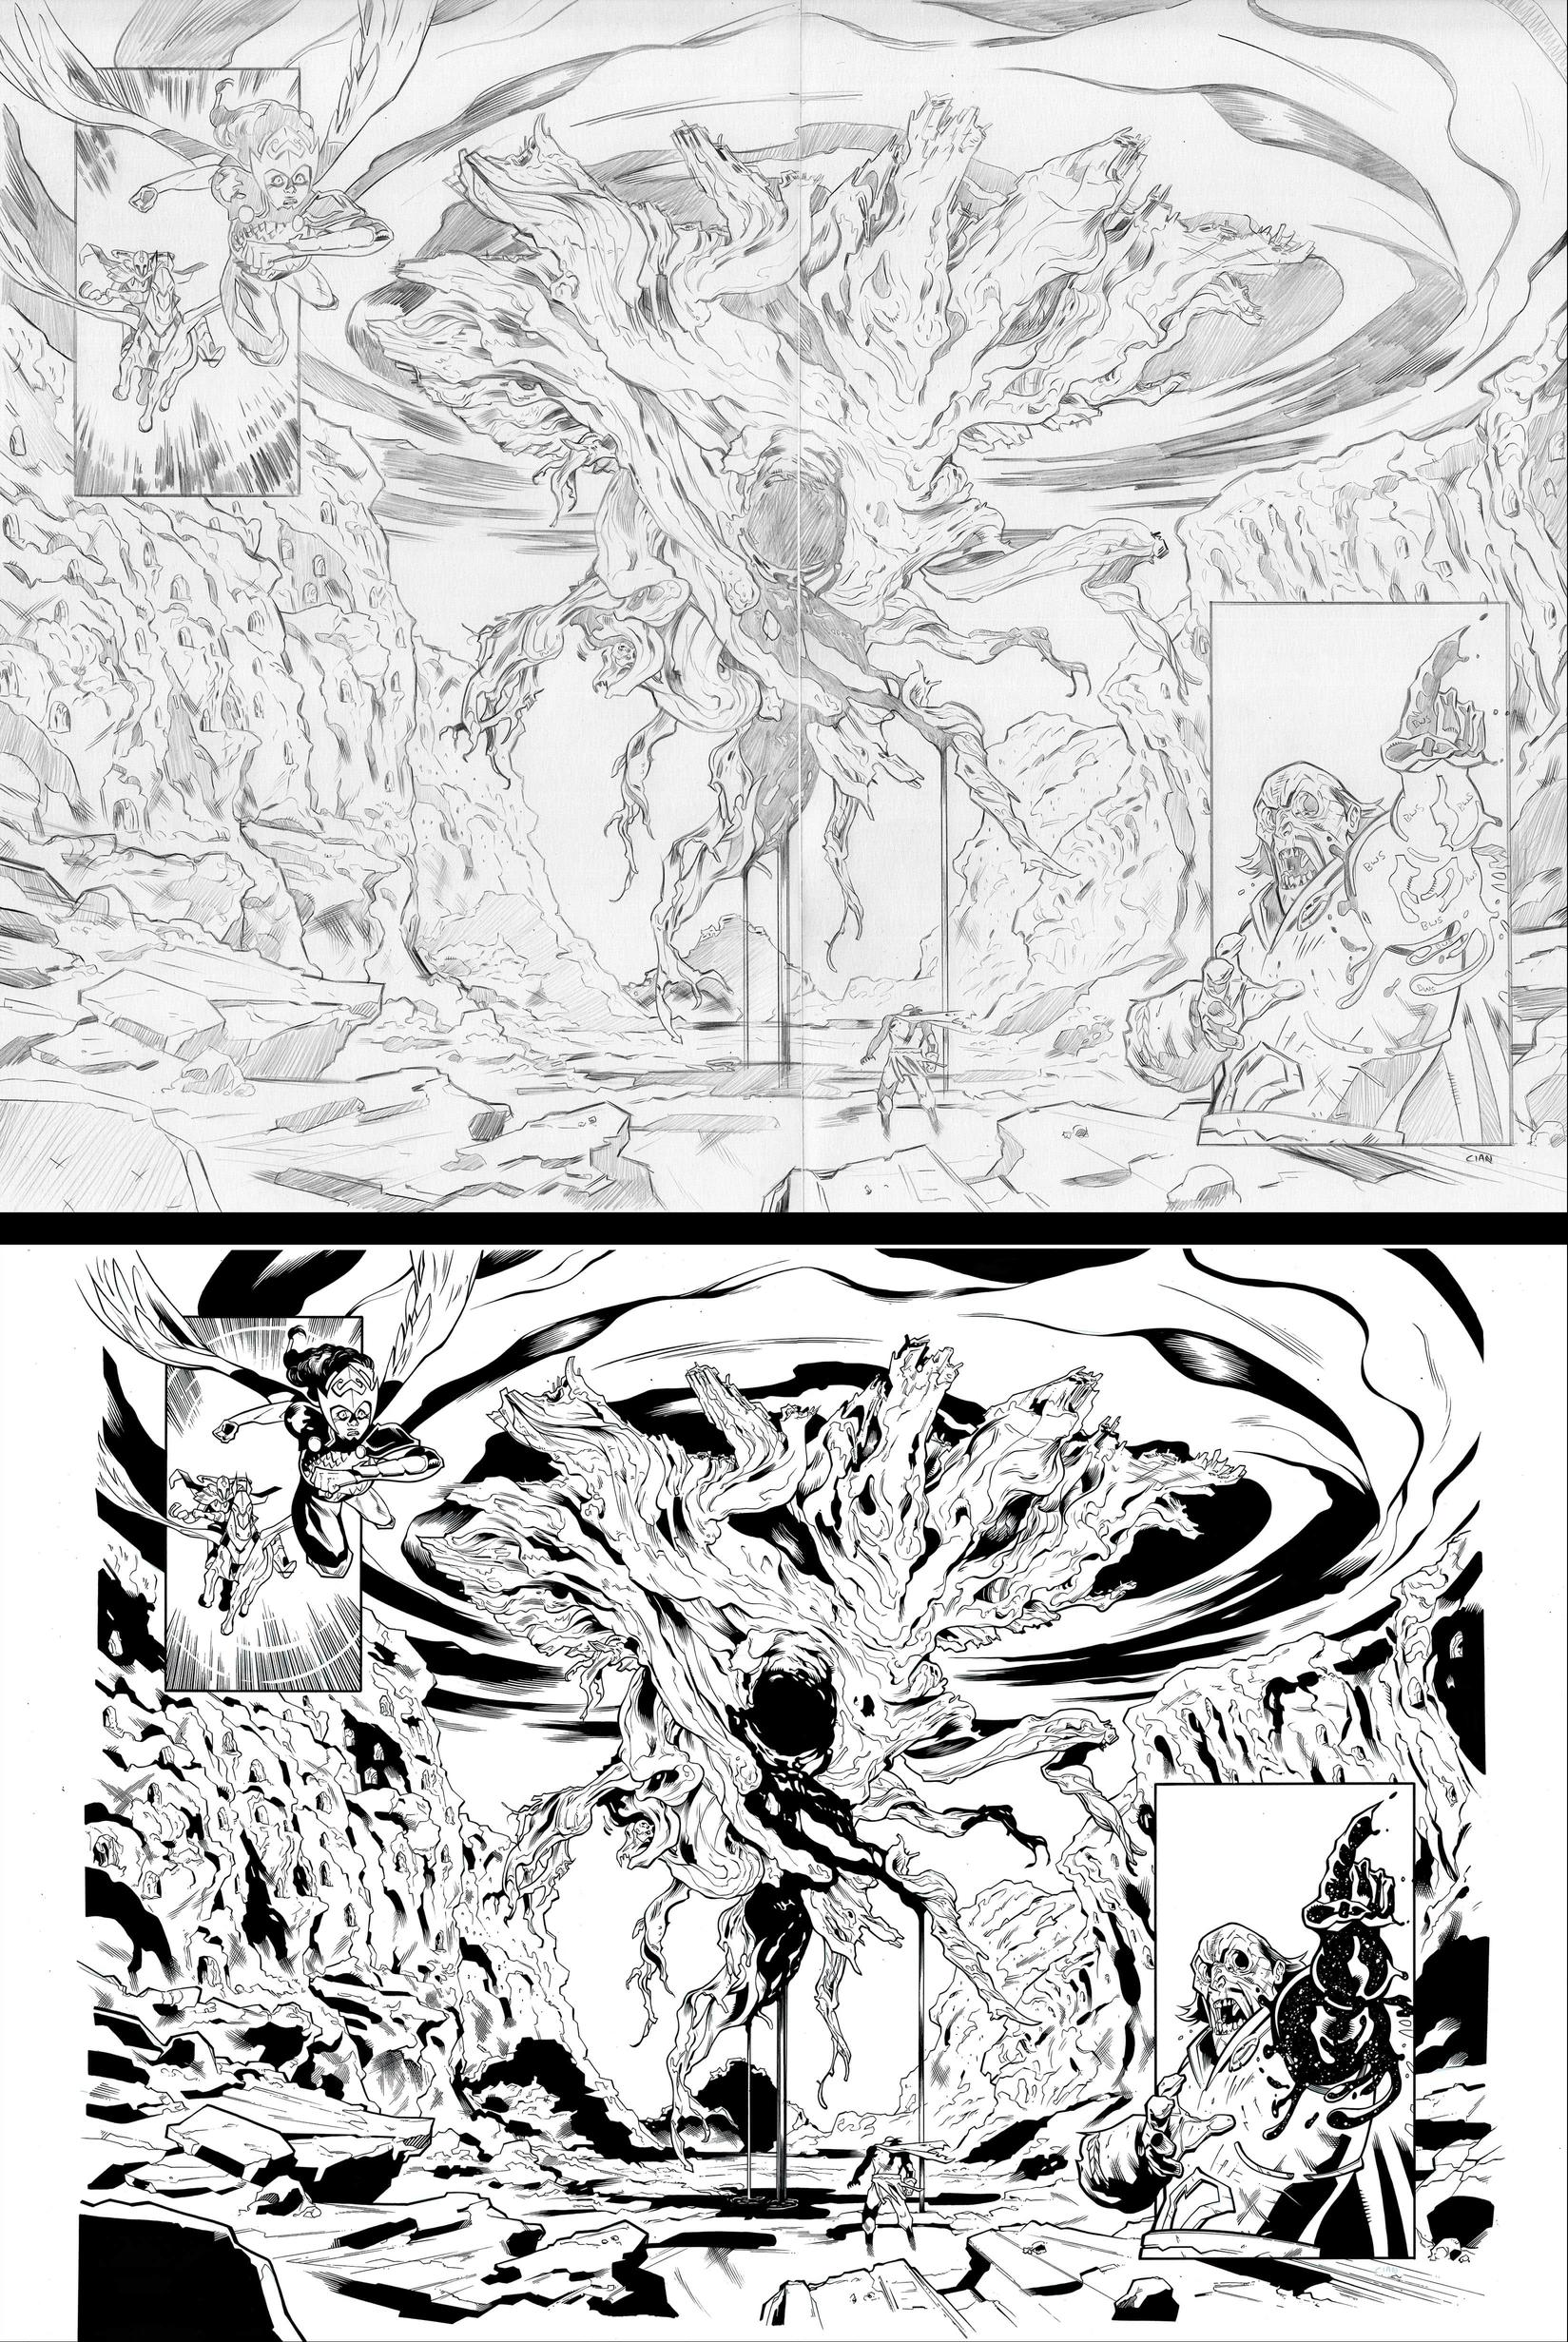 Process art by Cian Tormey